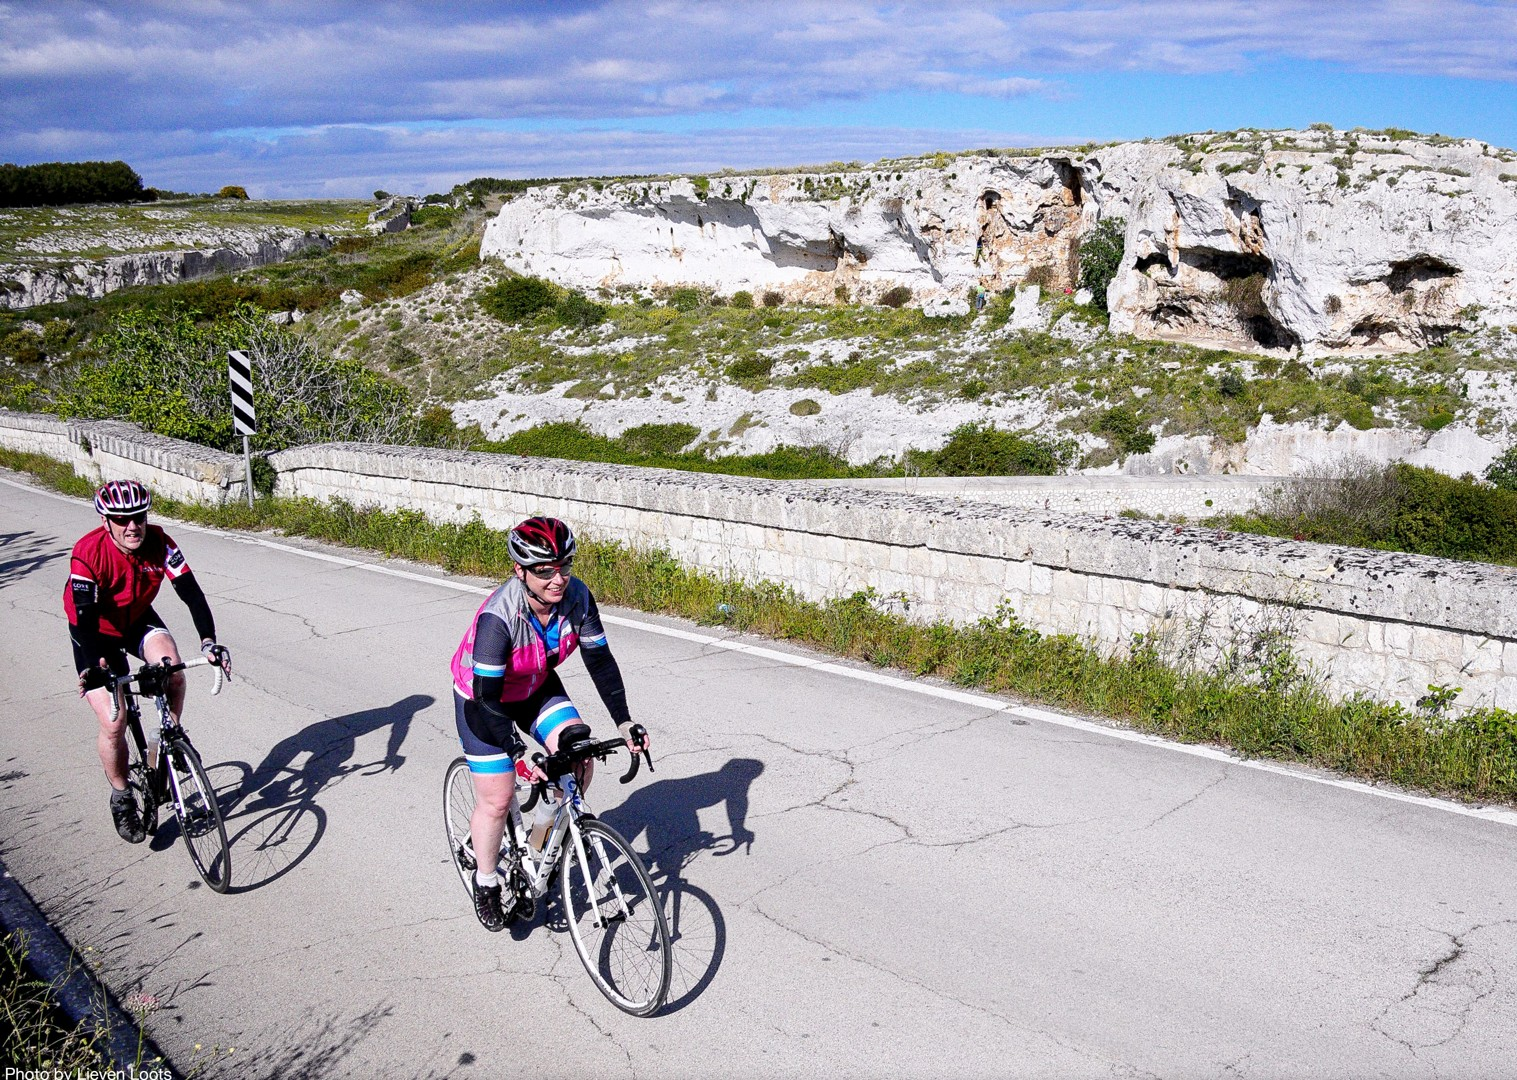 italy-road-cycling-holiday.jpg - Italy - Puglia - The Beautiful South - Self-Guided Road Cycling Holiday - Road Cycling